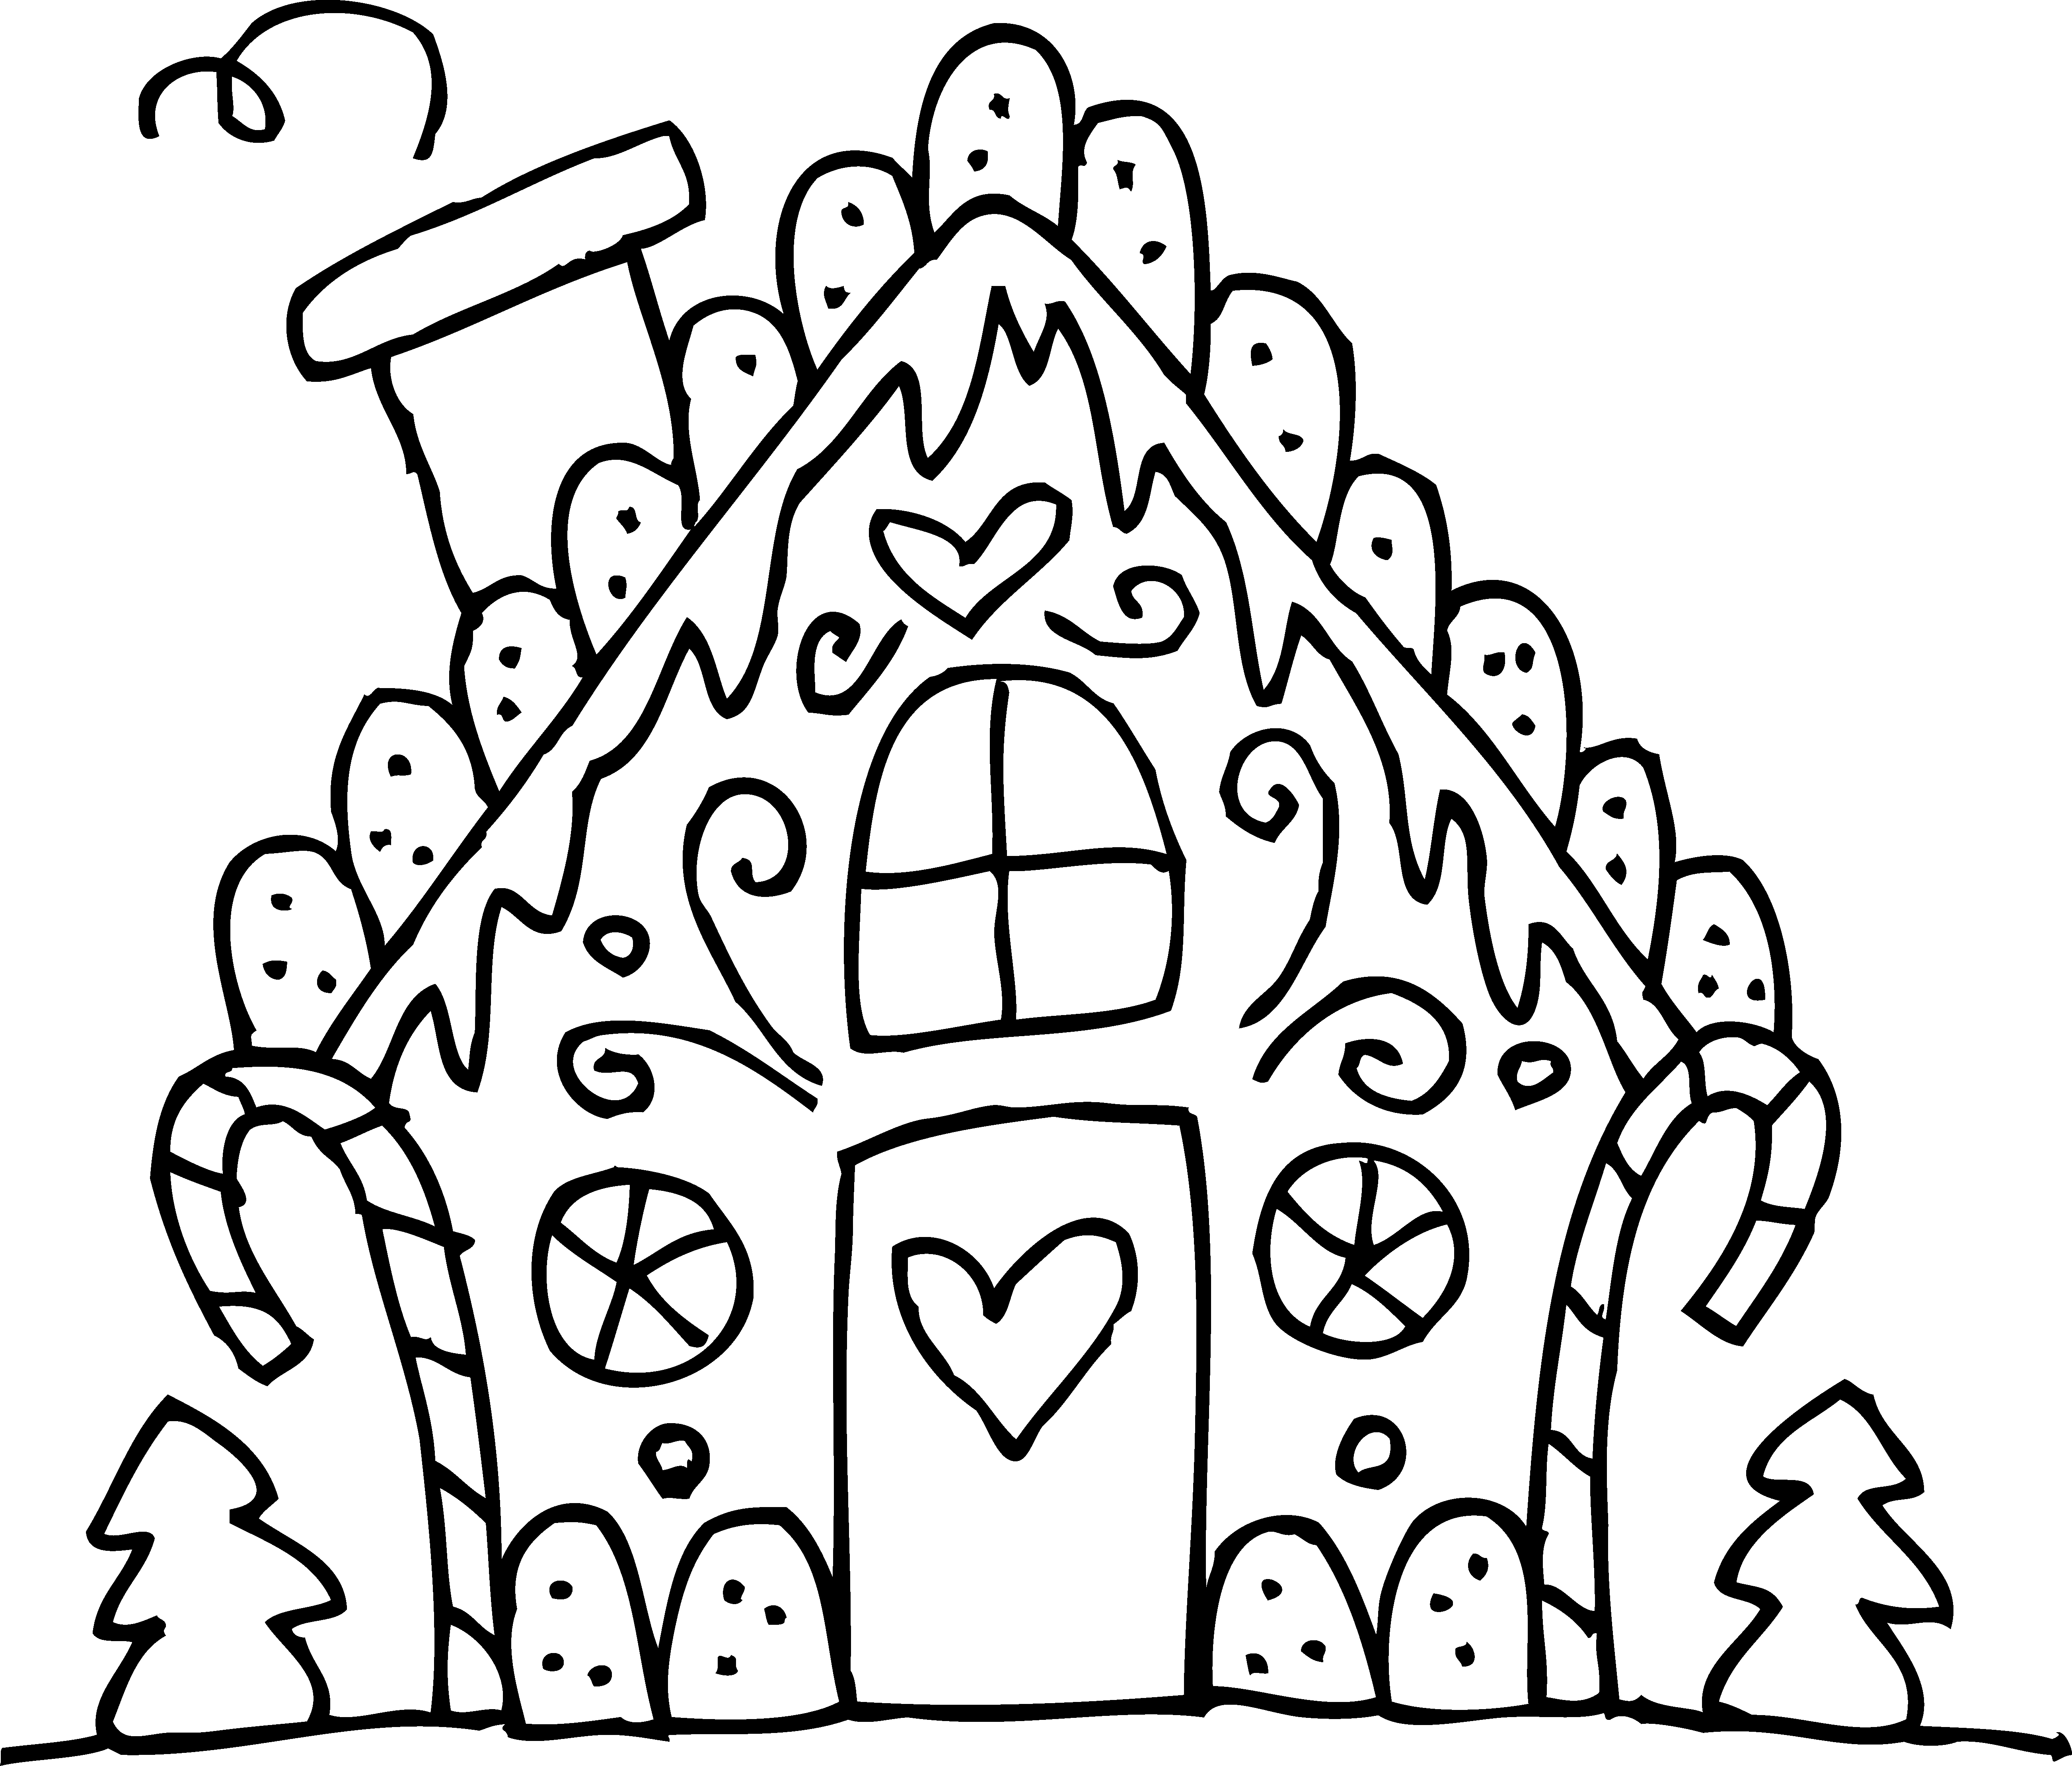 gingerbread house colouring pages printable gingerbread house coloring pages coloring home pages colouring house gingerbread